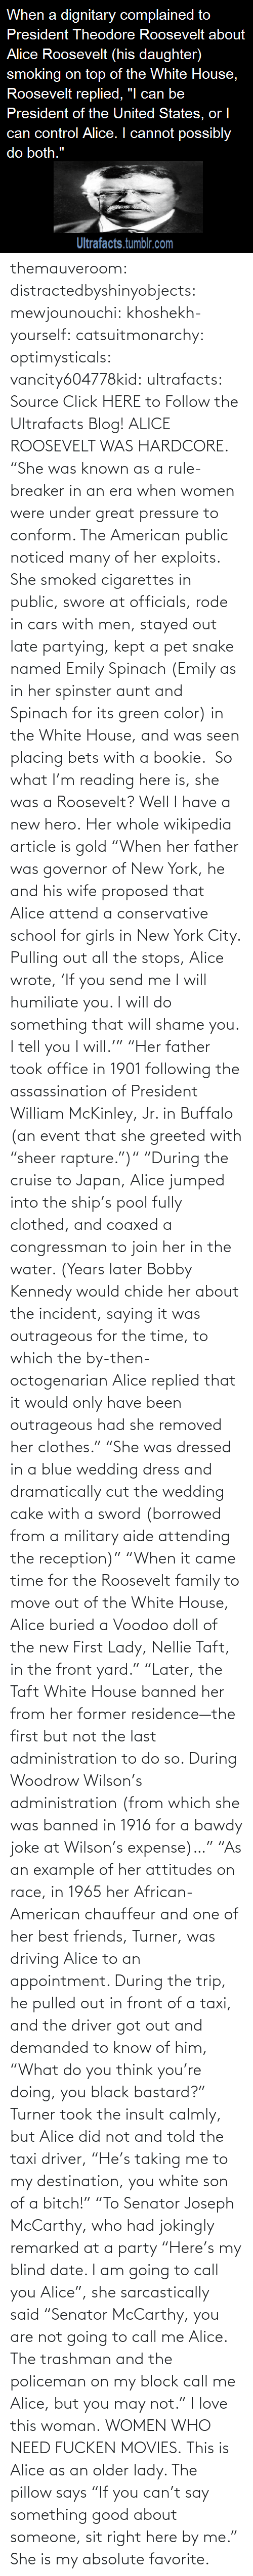 "gold: themauveroom: distractedbyshinyobjects:  mewjounouchi:  khoshekh-yourself:  catsuitmonarchy:  optimysticals:  vancity604778kid:  ultrafacts:     Source Click HERE to Follow the Ultrafacts Blog!     ALICE ROOSEVELT WAS HARDCORE. ""She was known as a rule-breaker in an era when women were under great pressure to conform. The American public noticed many of her exploits. She smoked cigarettes in public, swore at officials, rode in cars with men, stayed out late partying, kept a pet snake named Emily Spinach (Emily as in her spinster aunt and Spinach for its green color) in the White House, and was seen placing bets with a bookie.    So what I'm reading here is, she was a Roosevelt?  Well I have a new hero.  Her whole wikipedia article is gold ""When her father was governor of New York, he and his wife proposed that Alice attend a conservative school for girls in New York City. Pulling out all the stops, Alice wrote, 'If you send me I will humiliate you. I will do something that will shame you. I tell you I will.'"" ""Her father took office in 1901 following the assassination of President William McKinley, Jr. in Buffalo (an event that she greeted with ""sheer rapture."")"" ""During the cruise to Japan, Alice jumped into the ship's pool fully clothed, and coaxed a congressman to join her in the water. (Years later Bobby Kennedy would chide her about the incident, saying it was outrageous for the time, to which the by-then-octogenarian Alice replied that it would only have been outrageous had she removed her clothes."" ""She was dressed in a blue wedding dress and dramatically cut the wedding cake with a sword (borrowed from a military aide attending the reception)"" ""When it came time for the Roosevelt family to move out of the White House, Alice buried a Voodoo doll of the new First Lady, Nellie Taft, in the front yard."" ""Later, the Taft White House banned her from her former residence—the first but not the last administration to do so. During Woodrow Wilson's administration (from which she was banned in 1916 for a bawdy joke at Wilson's expense)…"" ""As an example of her attitudes on race, in 1965 her African-American chauffeur and one of her best friends, Turner, was driving Alice to an appointment. During the trip, he pulled out in front of a taxi, and the driver got out and demanded to know of him, ""What do you think you're doing, you black bastard?"" Turner took the insult calmly, but Alice did not and told the taxi driver, ""He's taking me to my destination, you white son of a bitch!"" ""To Senator Joseph McCarthy, who had jokingly remarked at a party ""Here's my blind date. I am going to call you Alice"", she sarcastically said ""Senator McCarthy, you are not going to call me Alice. The trashman and the policeman on my block call me Alice, but you may not.""  I love this woman.  WOMEN WHO NEED FUCKEN MOVIES.   This is Alice as an older lady. The pillow says ""If you can't say something good about someone, sit right here by me.""  She is my absolute favorite."